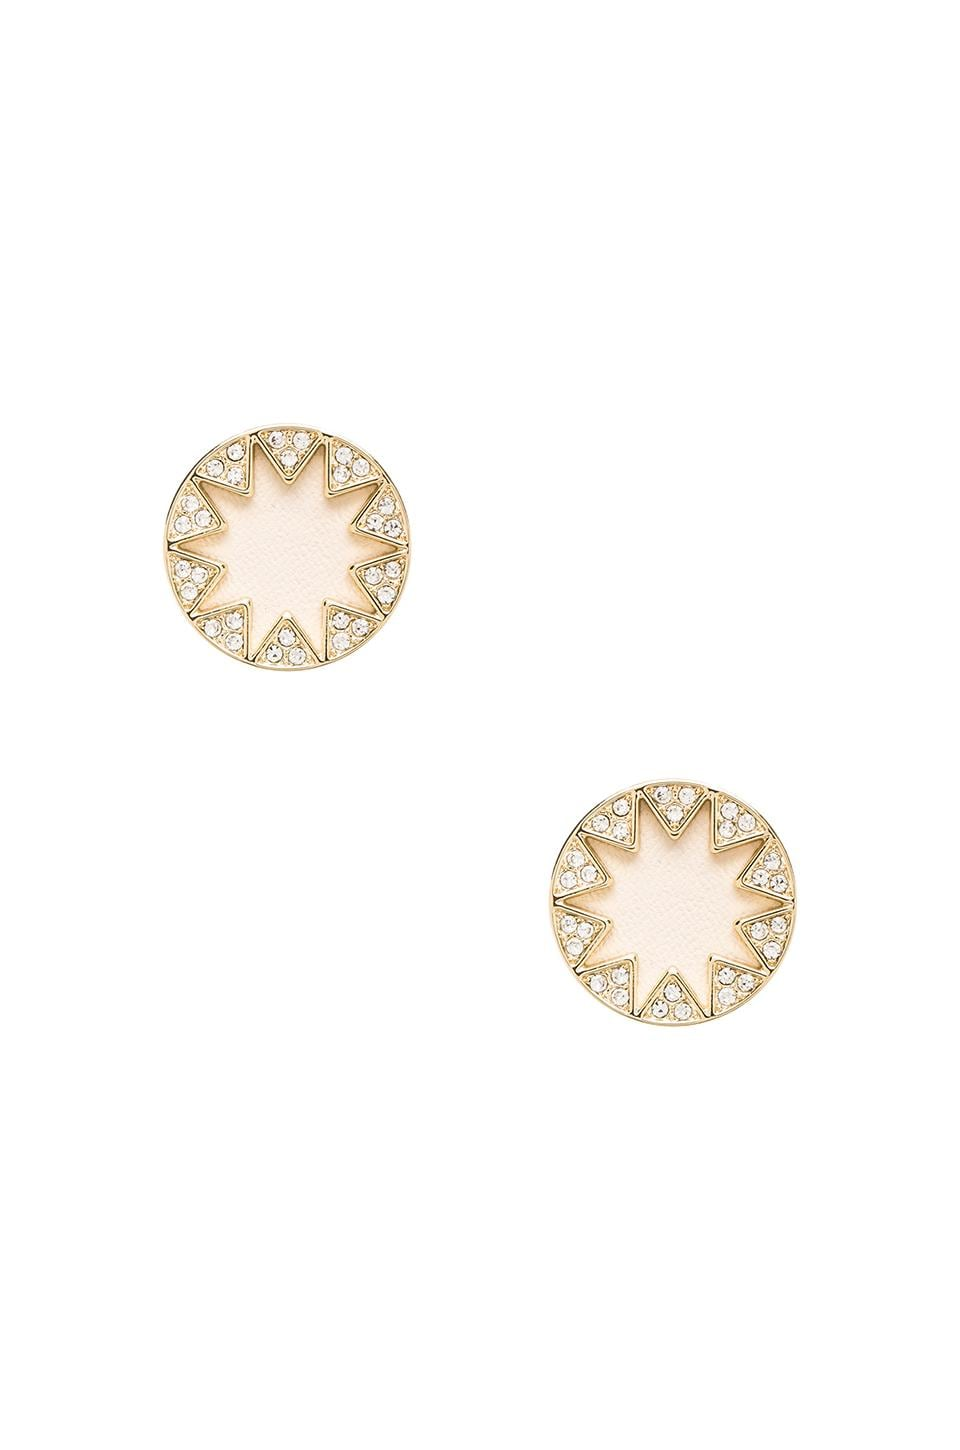 House of Harlow 1960 House of Harlow Sunburst Pave Earrings in Gold Tone Cream